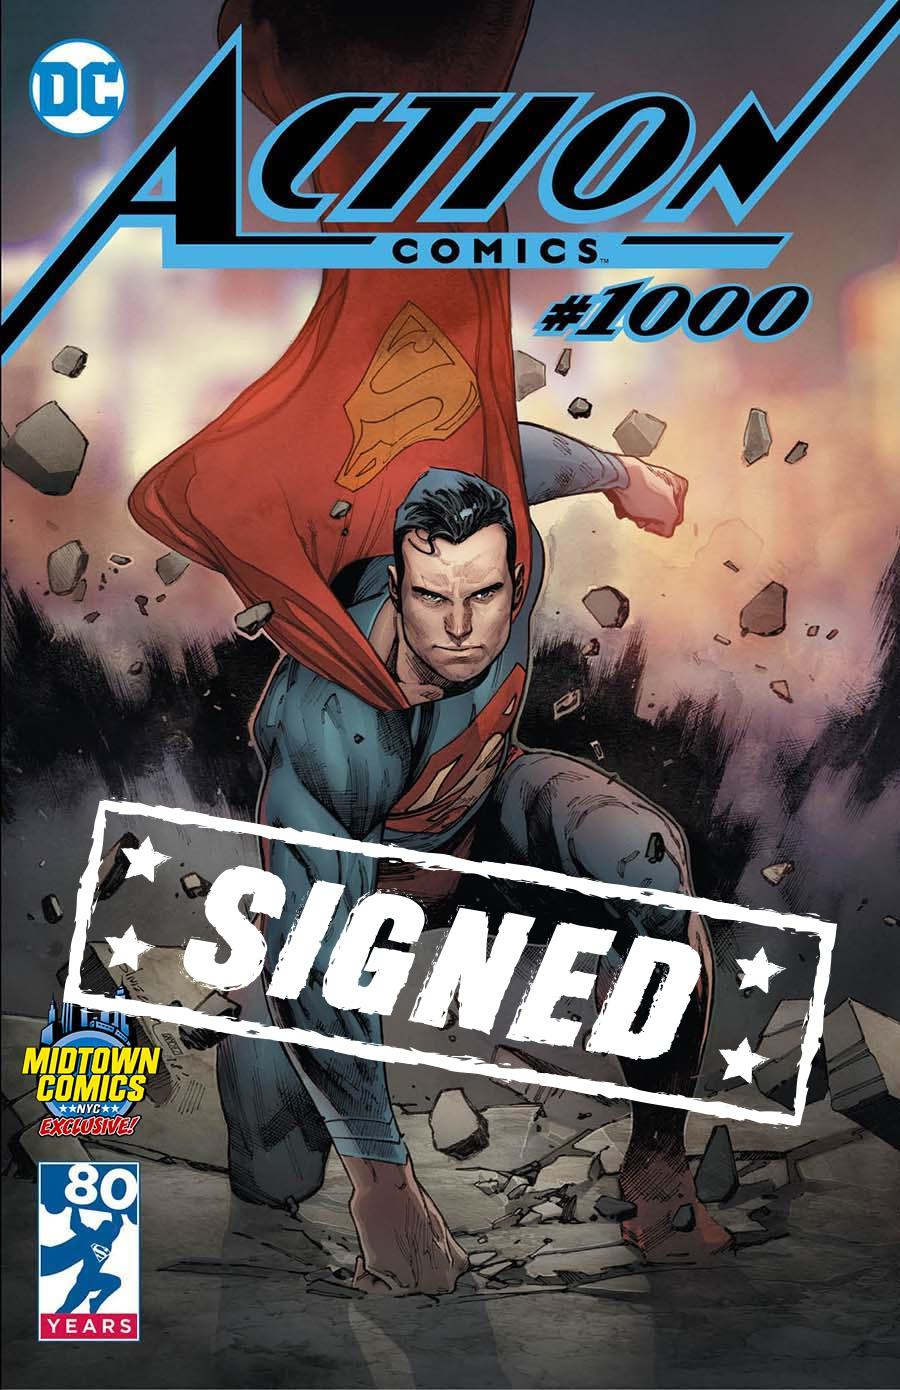 Action Comics Vol 2 #1000  Midtown Exclusive Olivier Coipel Color Variant Cover Signed By Peter J Tomasi